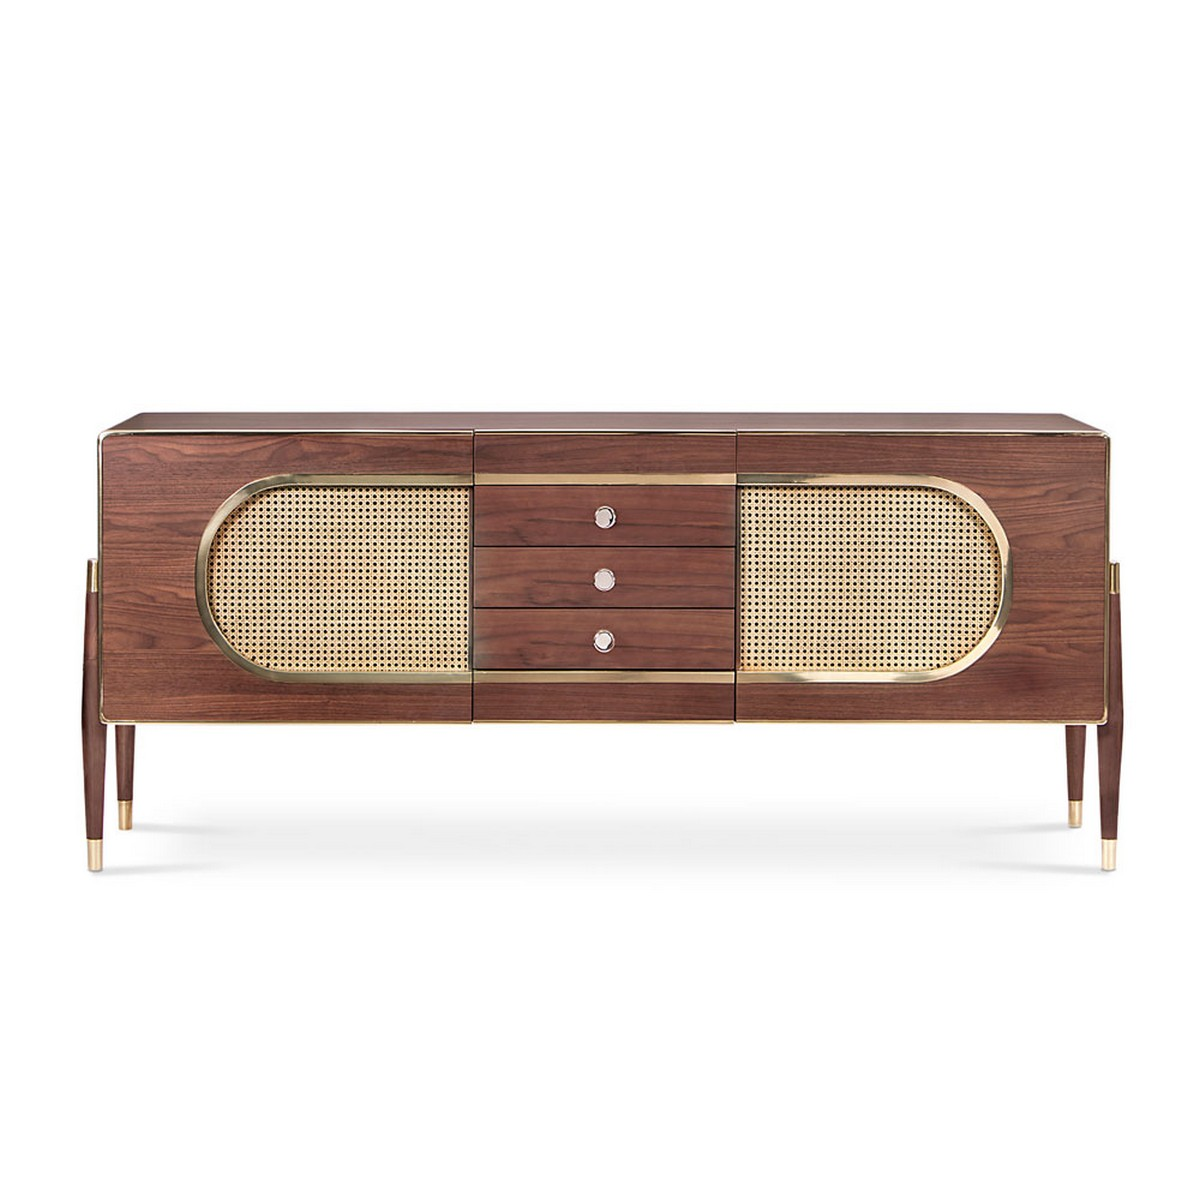 Dandy Sideboard Adding A Mid-century Touch To Your Home Decor